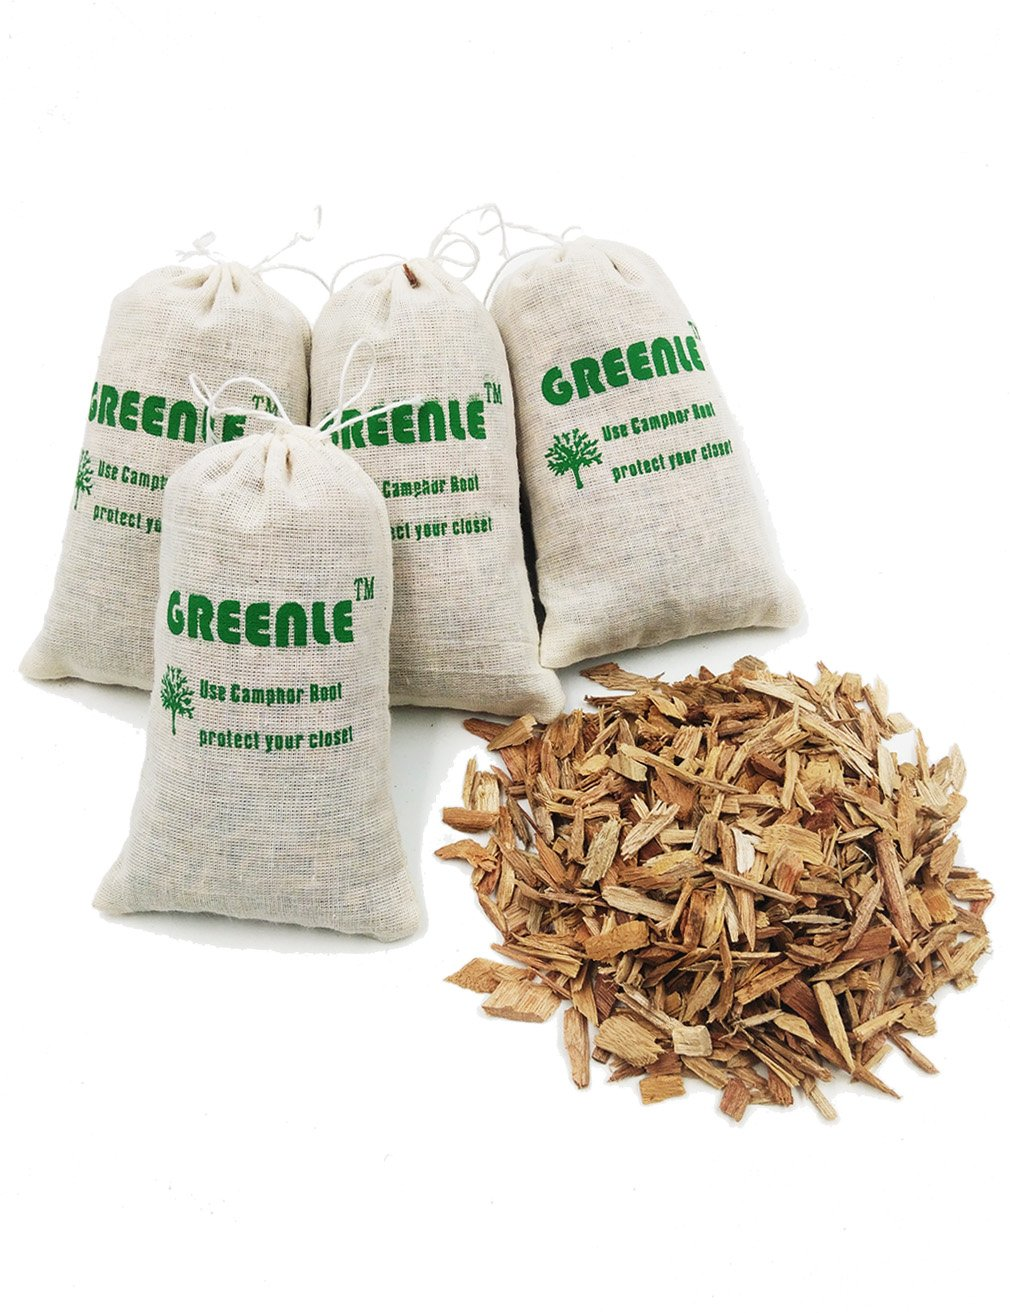 GREENLE Moth Repellent Sachets With Natural Camphorwood Root Chips Shaving Anti Moth for Closets Clothes Freshener Drawers Storage Accessories Pack of 4 Large Bags